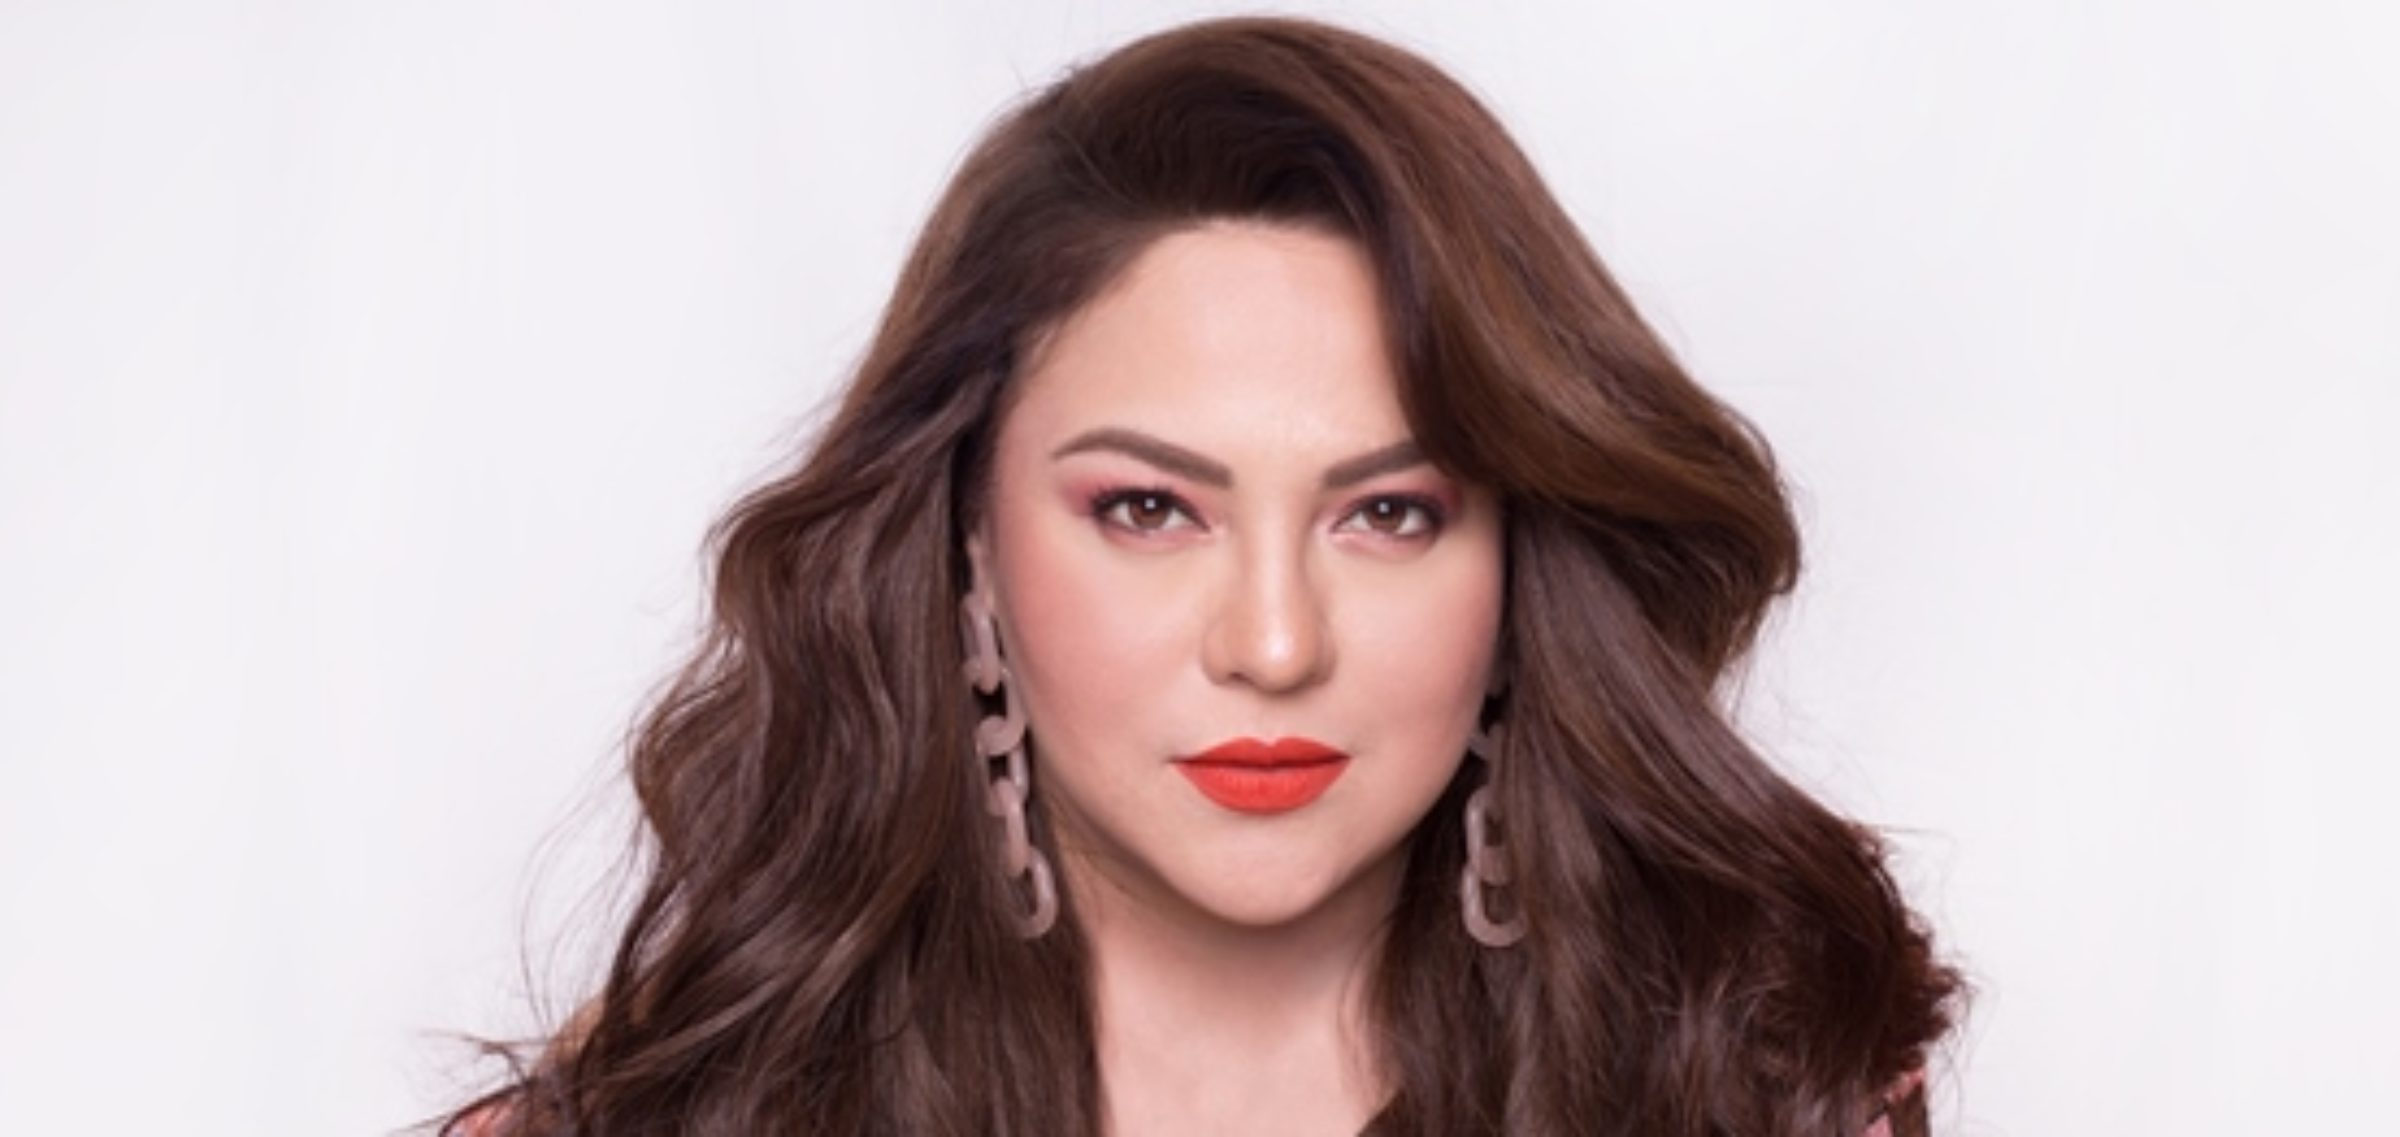 Queen Mother Salon by Karla Estrada